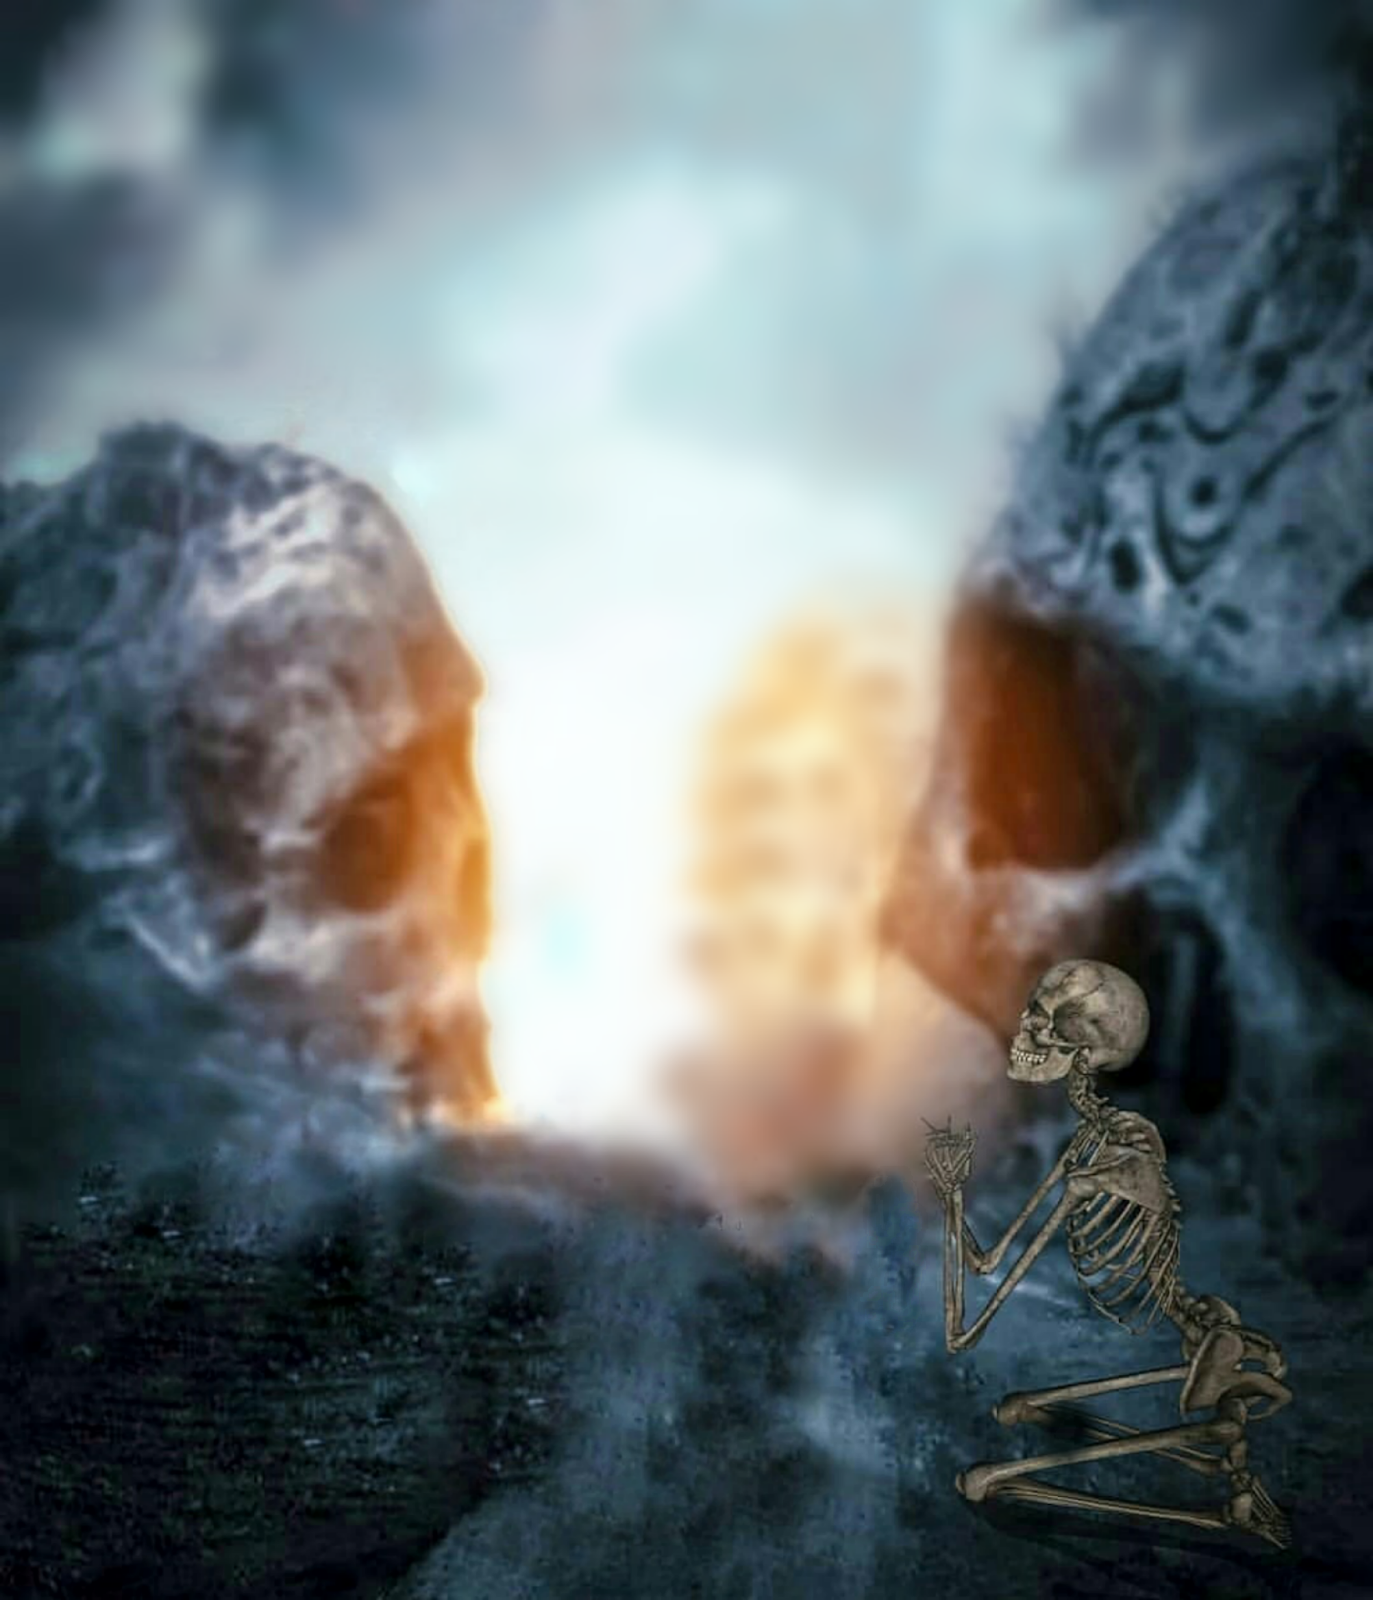 Top 10 Manipulation Background Download In High Quality For.